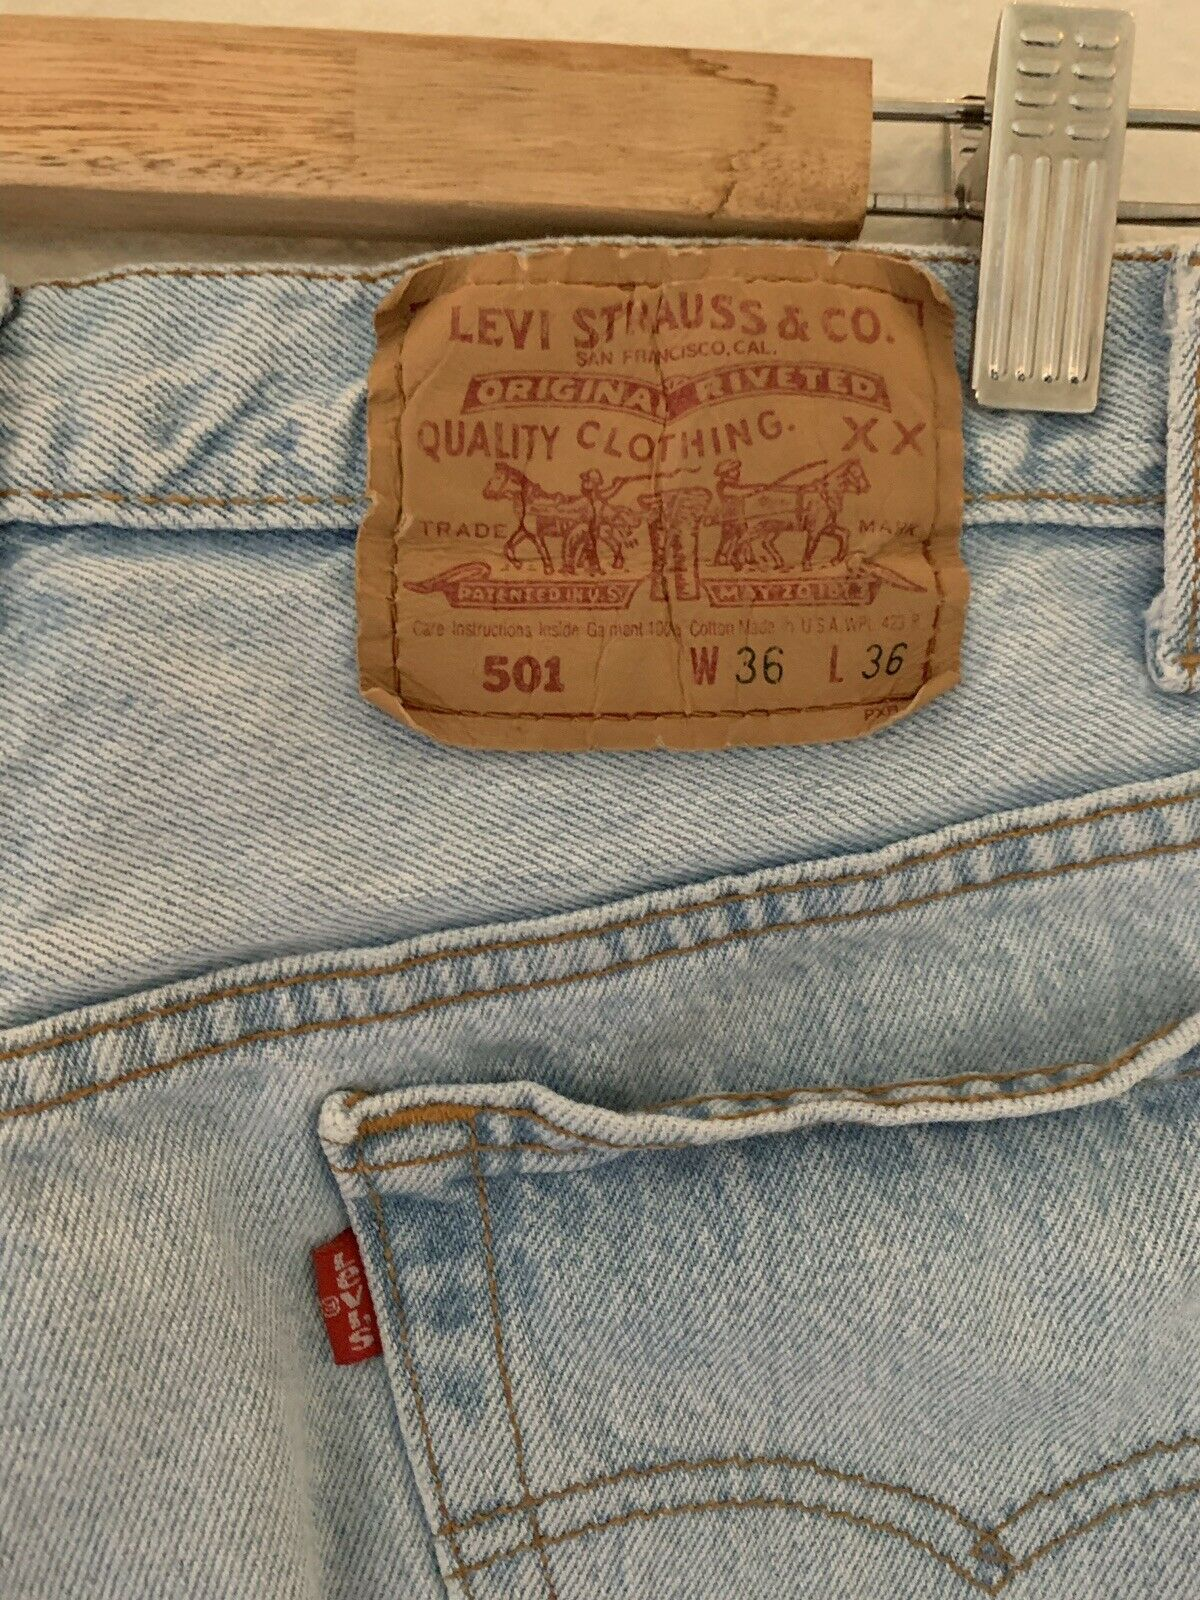 Levis Vintage 501 Made In USA - image 3